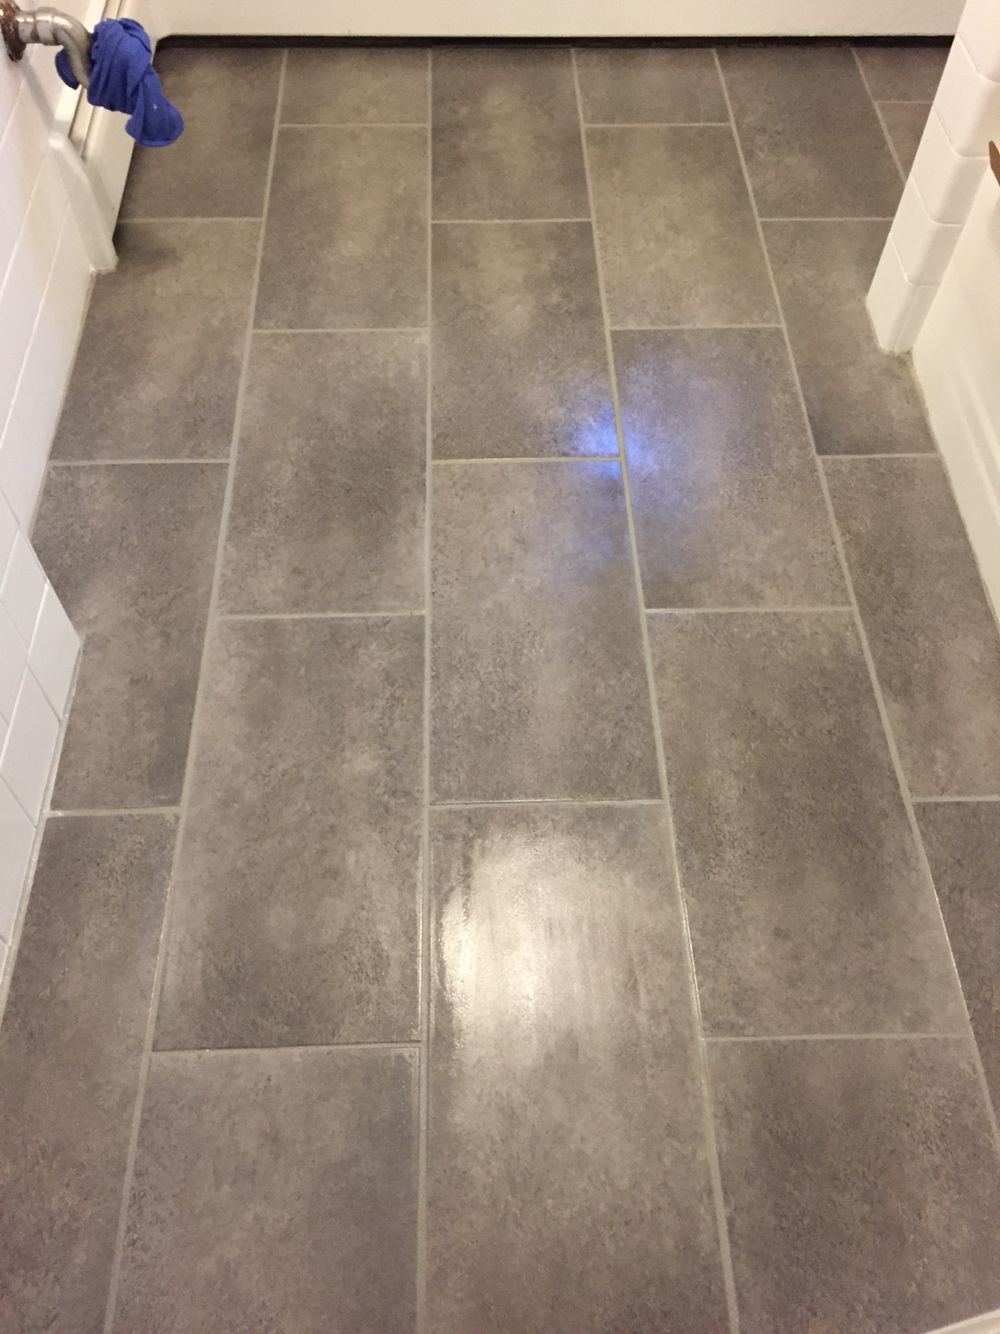 Home Depot Trafficmaster Groutable Vinyl Tile Coastal Grey